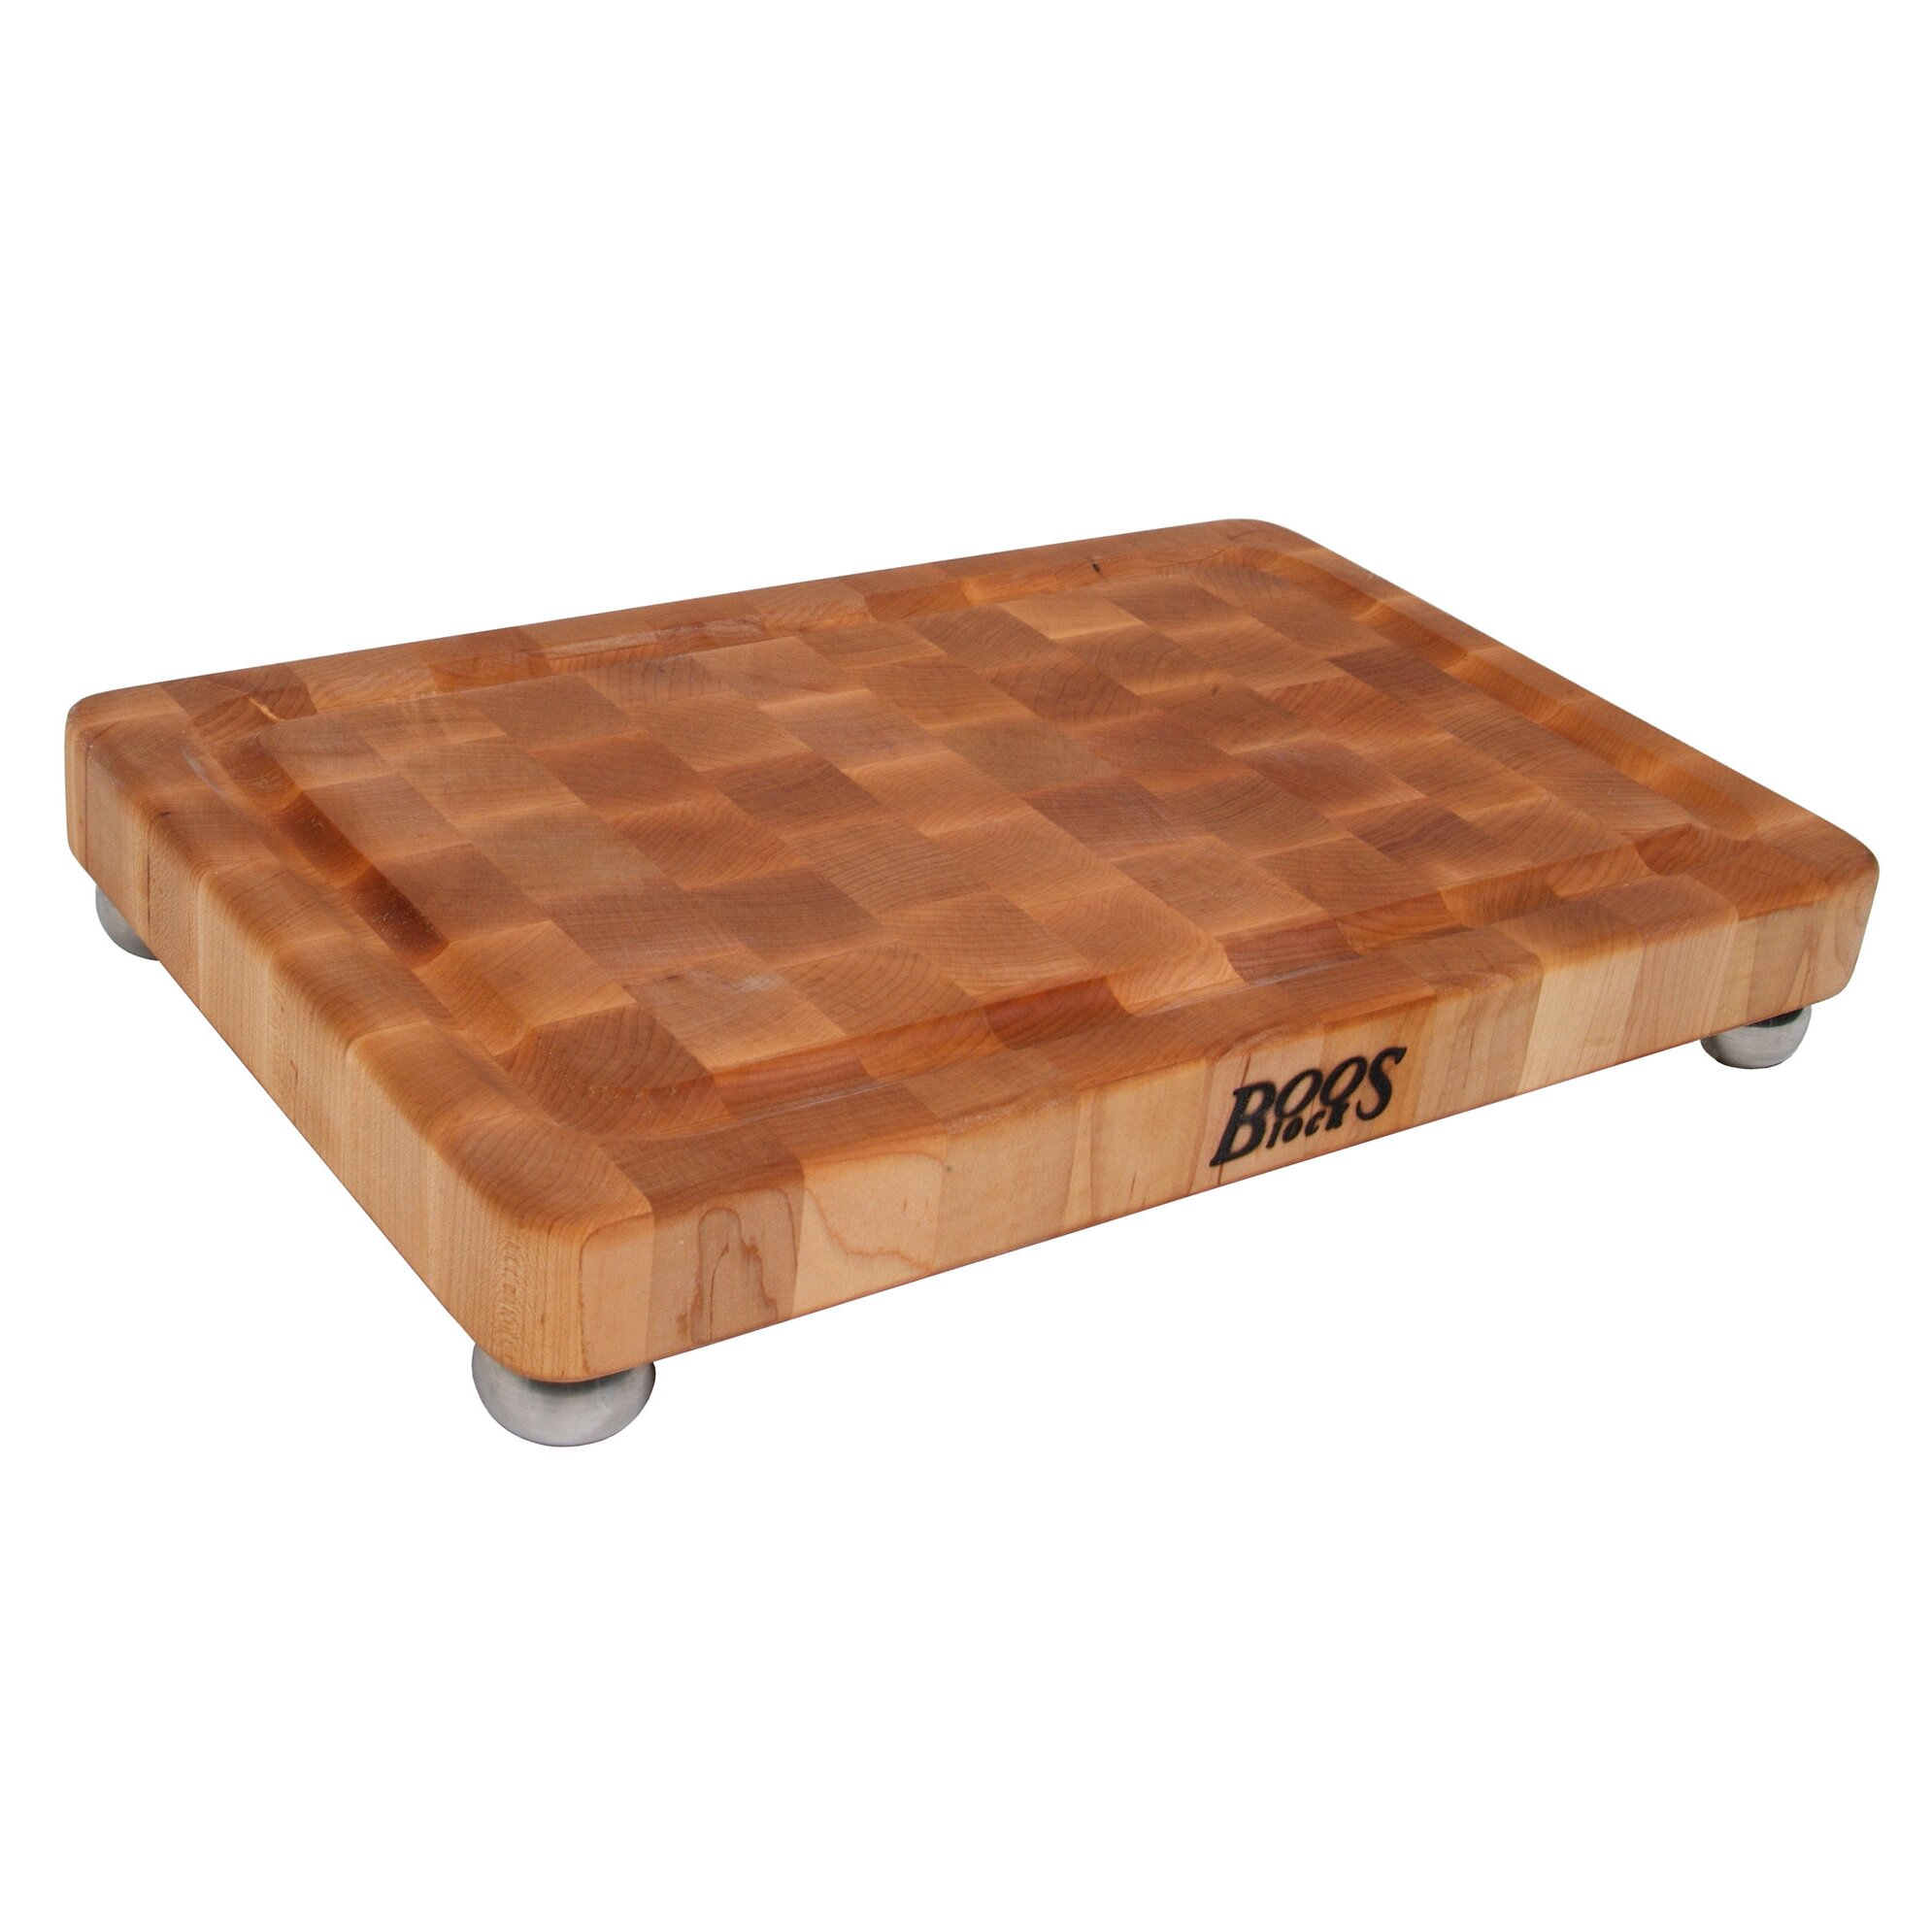 John Boos Boosblock Maple Cutting Board With Stainless